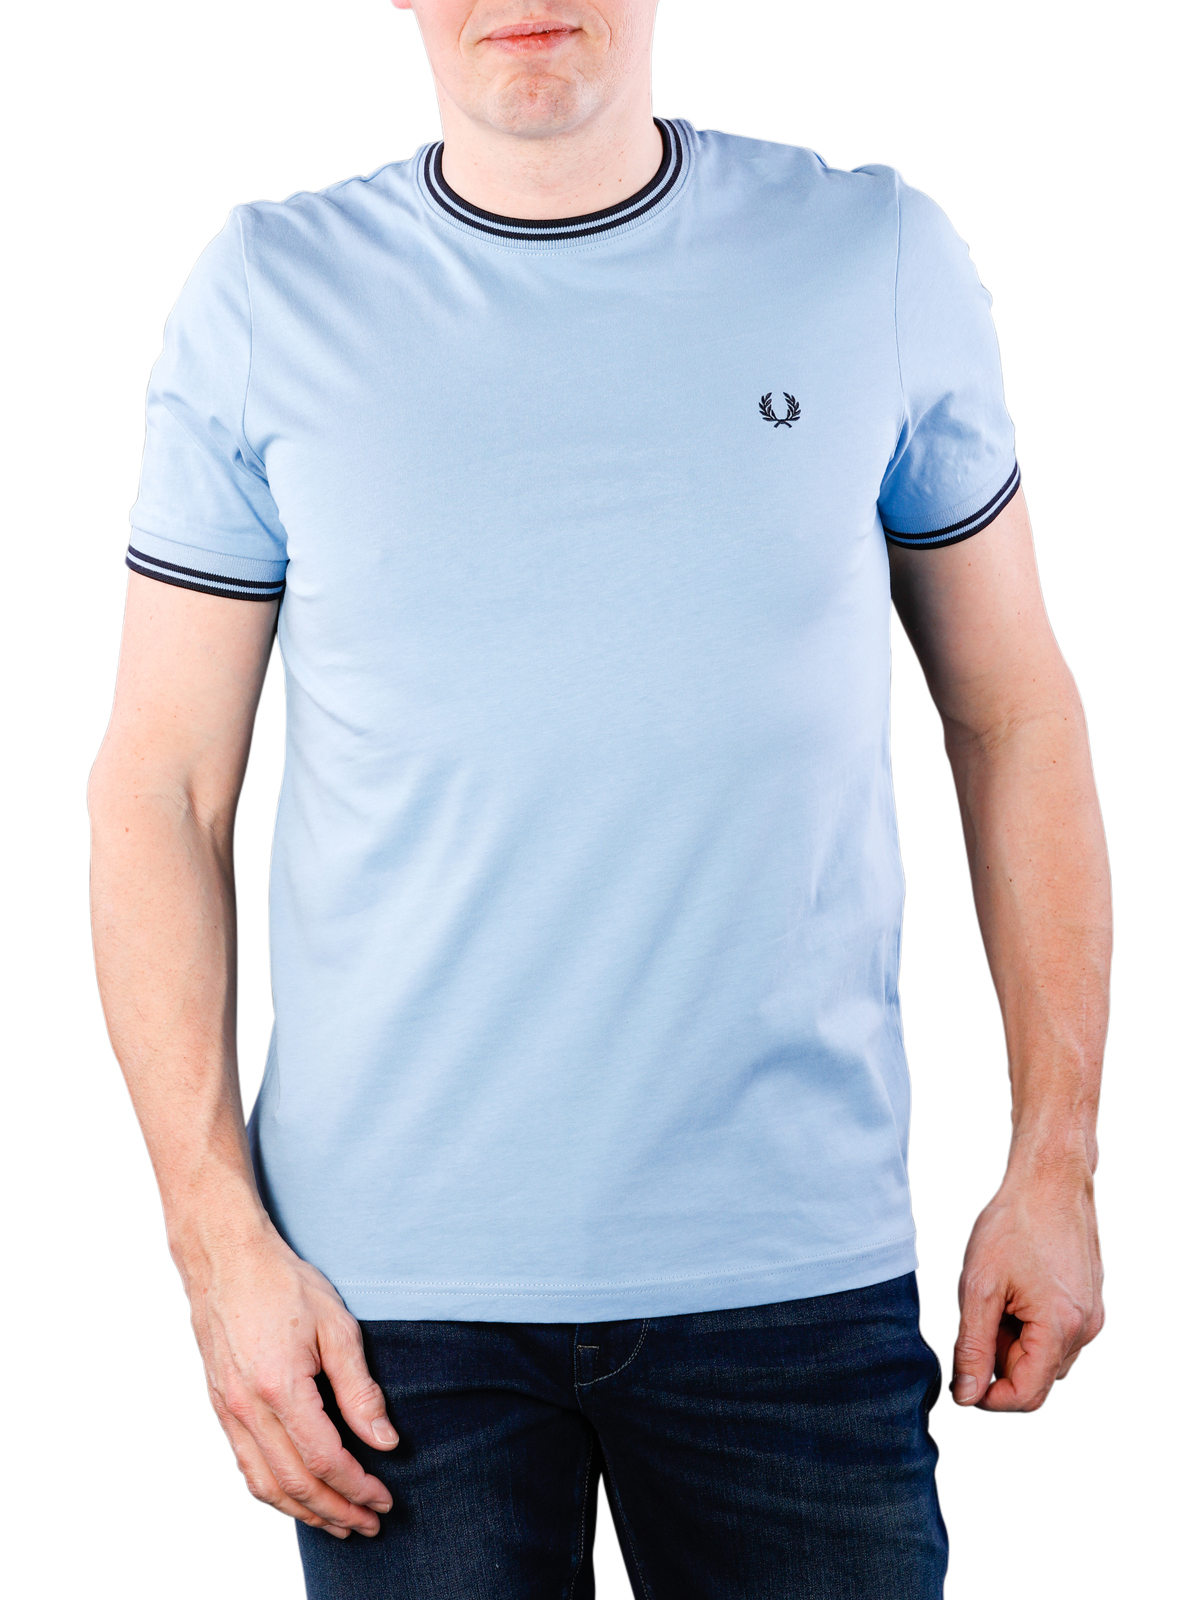 Fred Perry Mens Twin Tipped T-Shirt M1588 444 Blue M